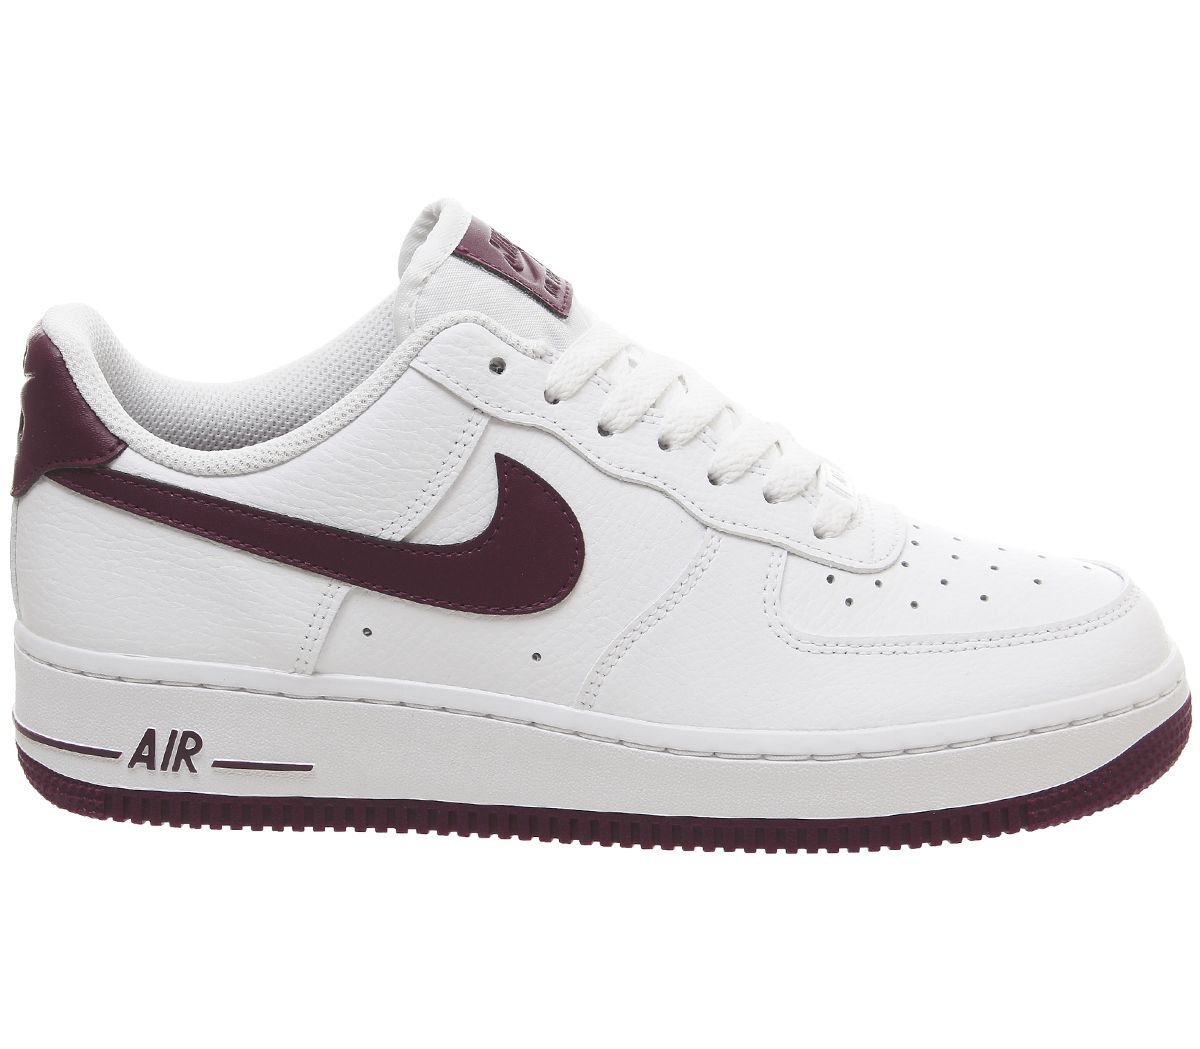 Nike Air Force 1 07 Trainers White Bordeaux - Hers trainers ...